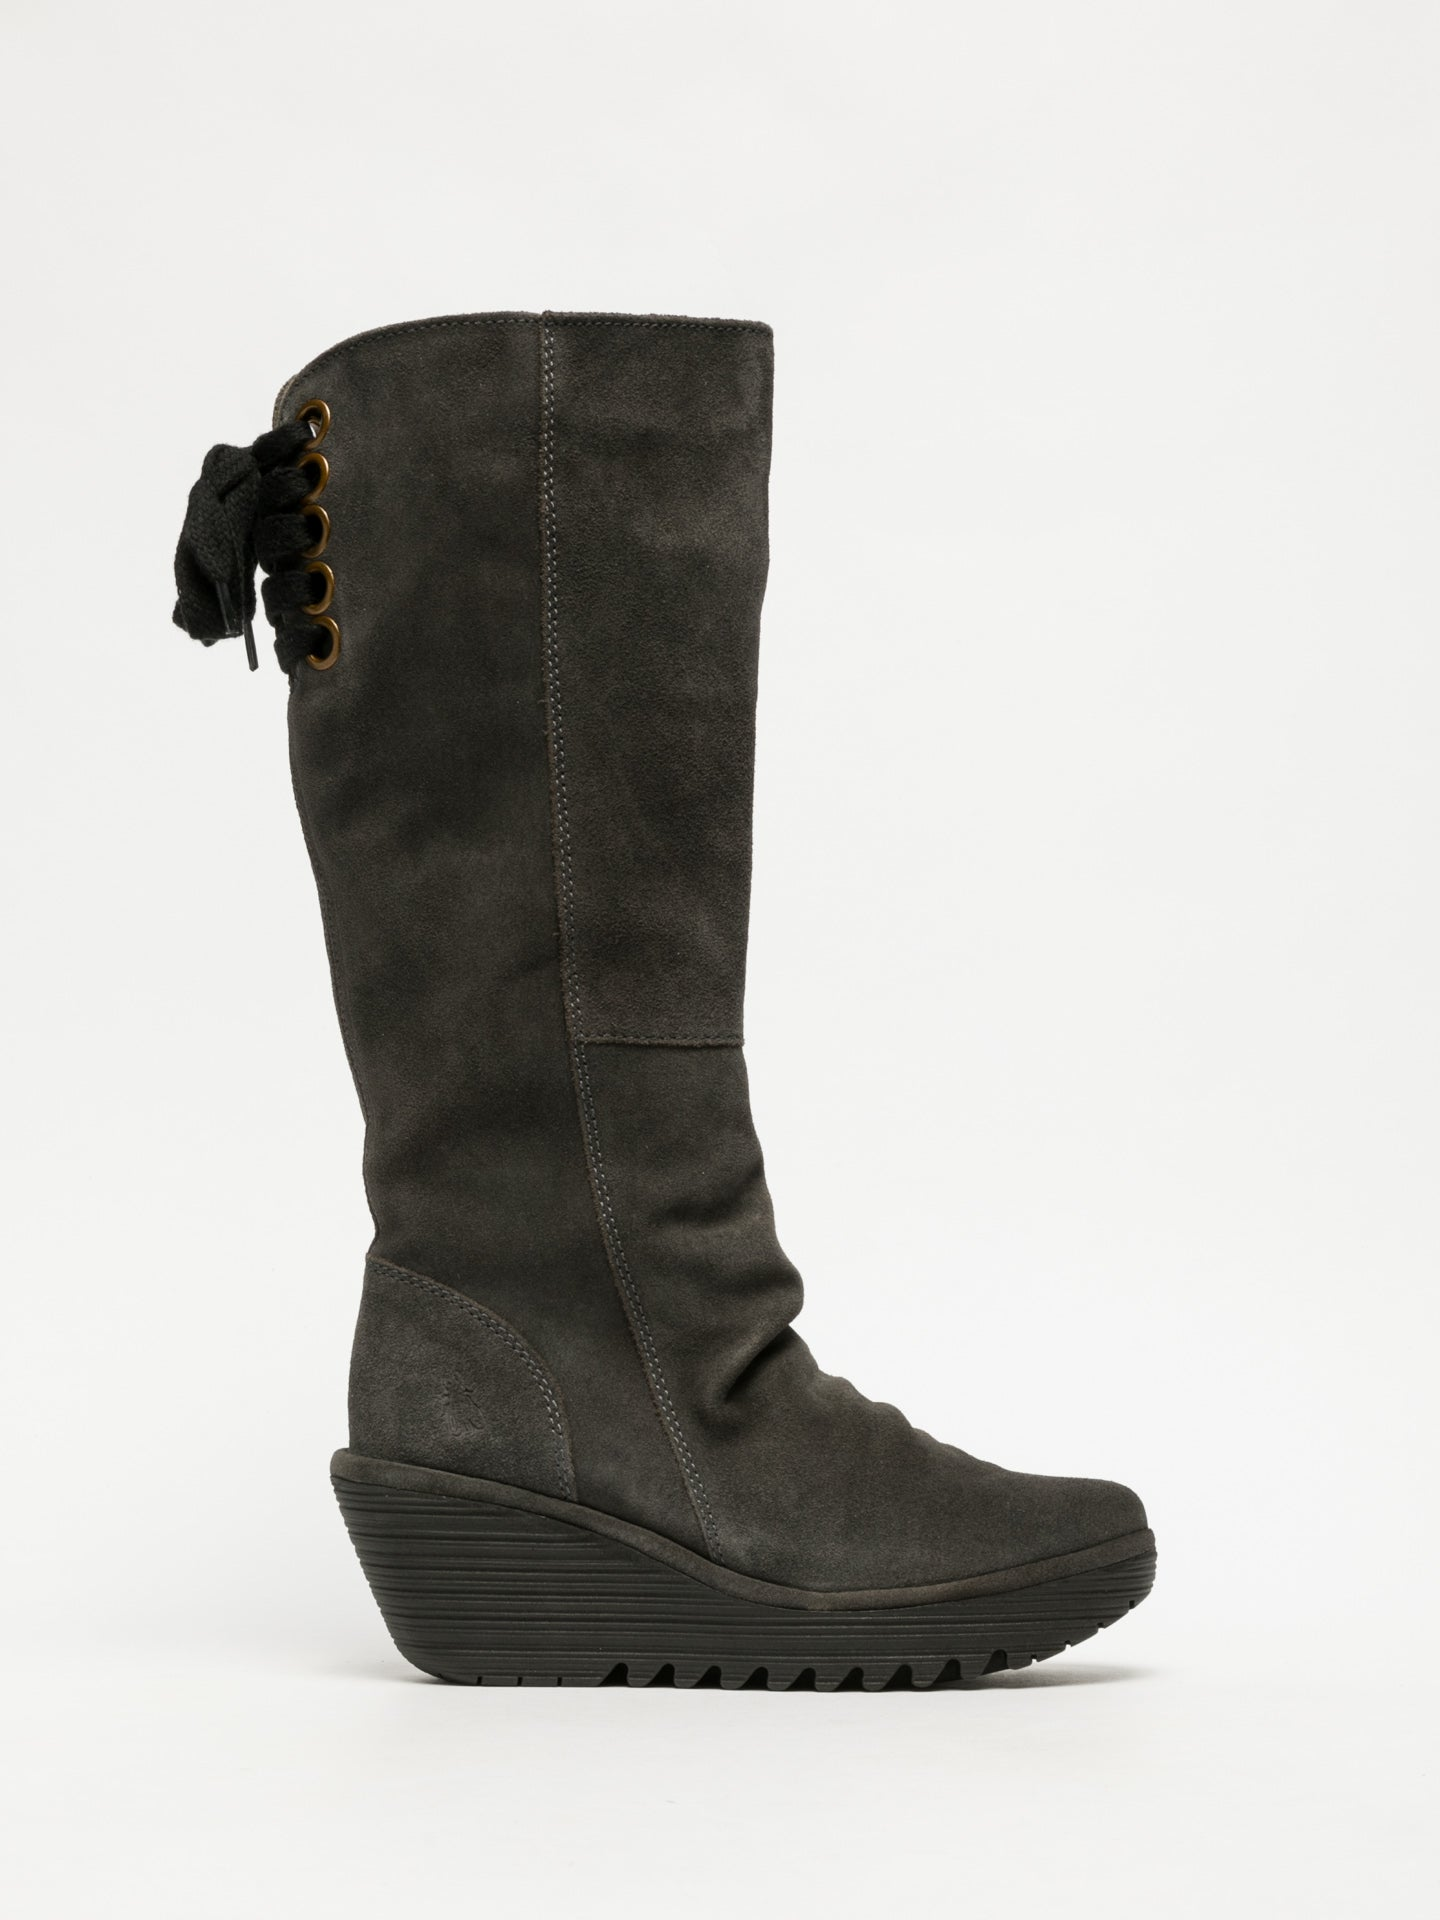 Fly London Botas Altas en color Gris